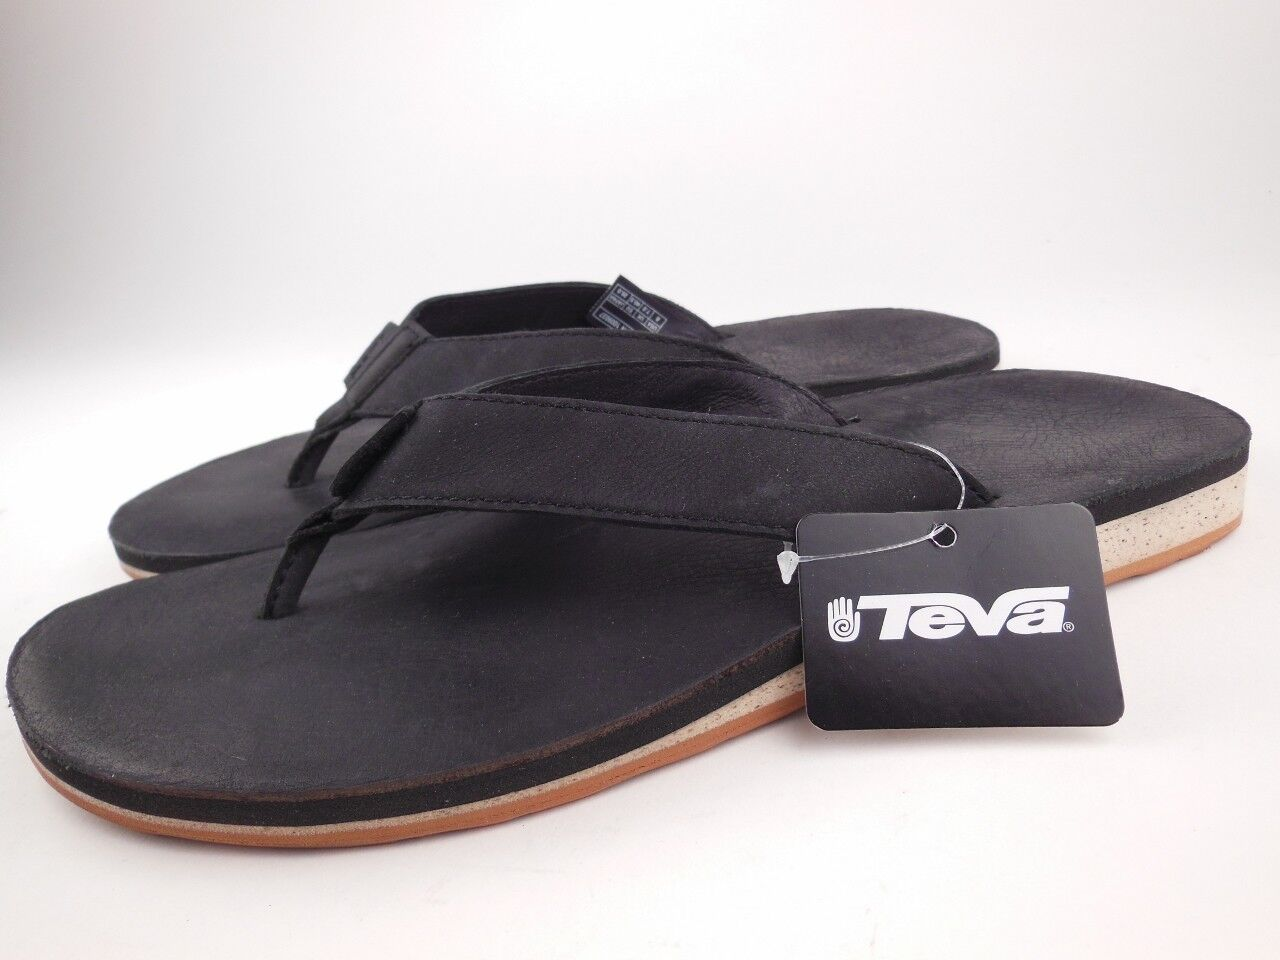 f51fe6e6731f79 Teva Classic Premium Leather Black Flip Flops Sandals Sz 8 for sale ...